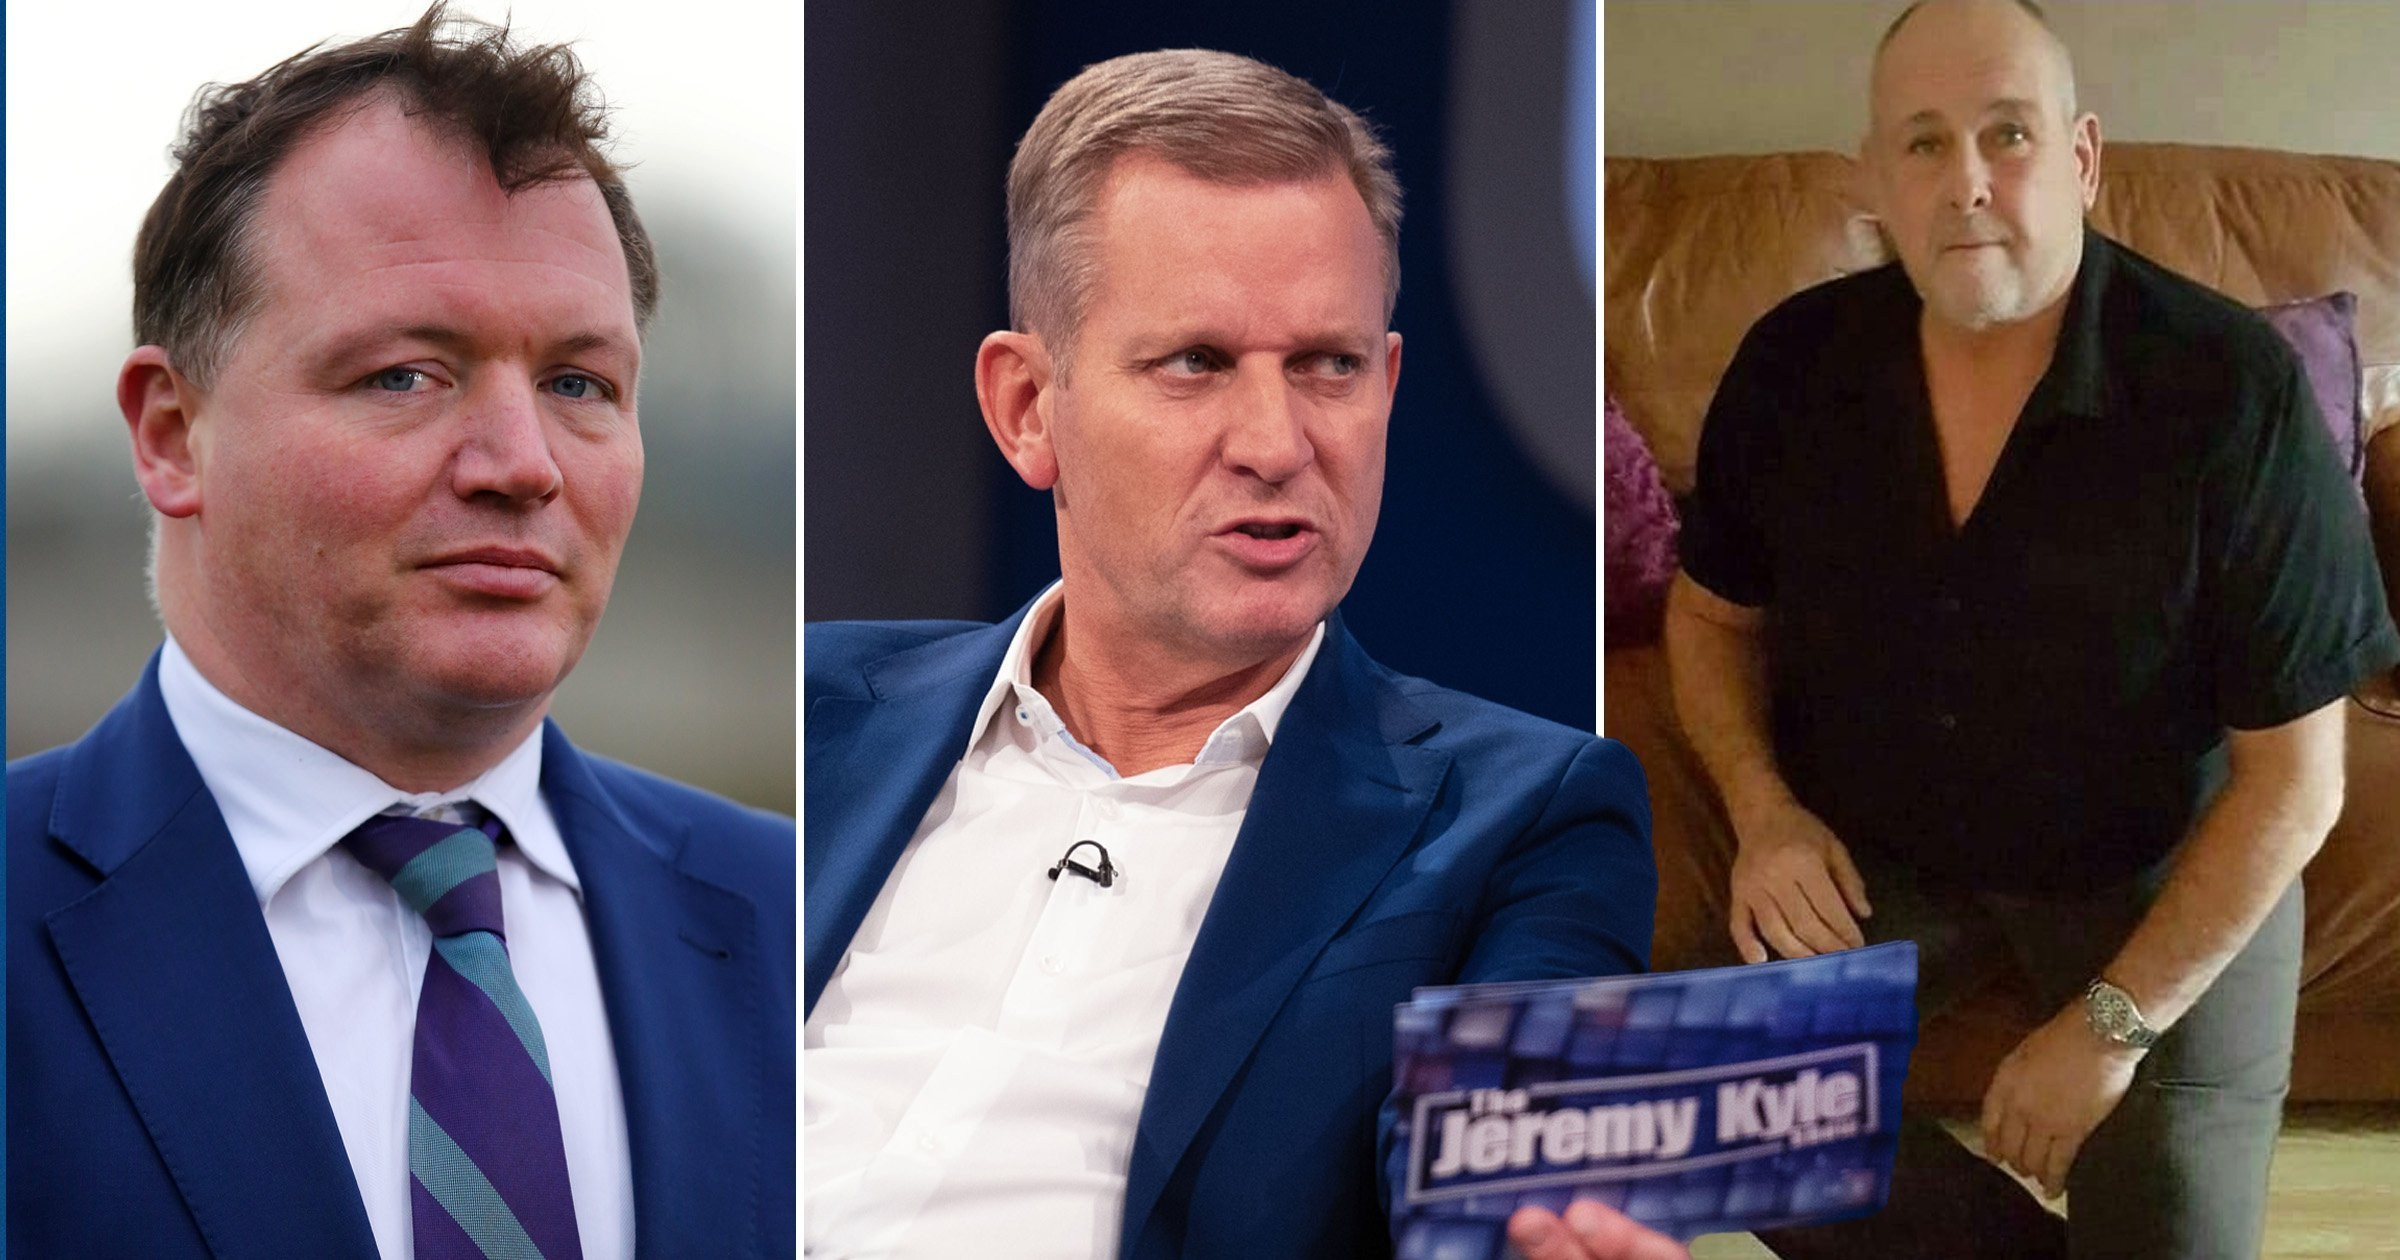 Jeremy Kyle 'shouldn't be allowed back on air' until he's 'held to account' over Steve Dymond's death, claims MP